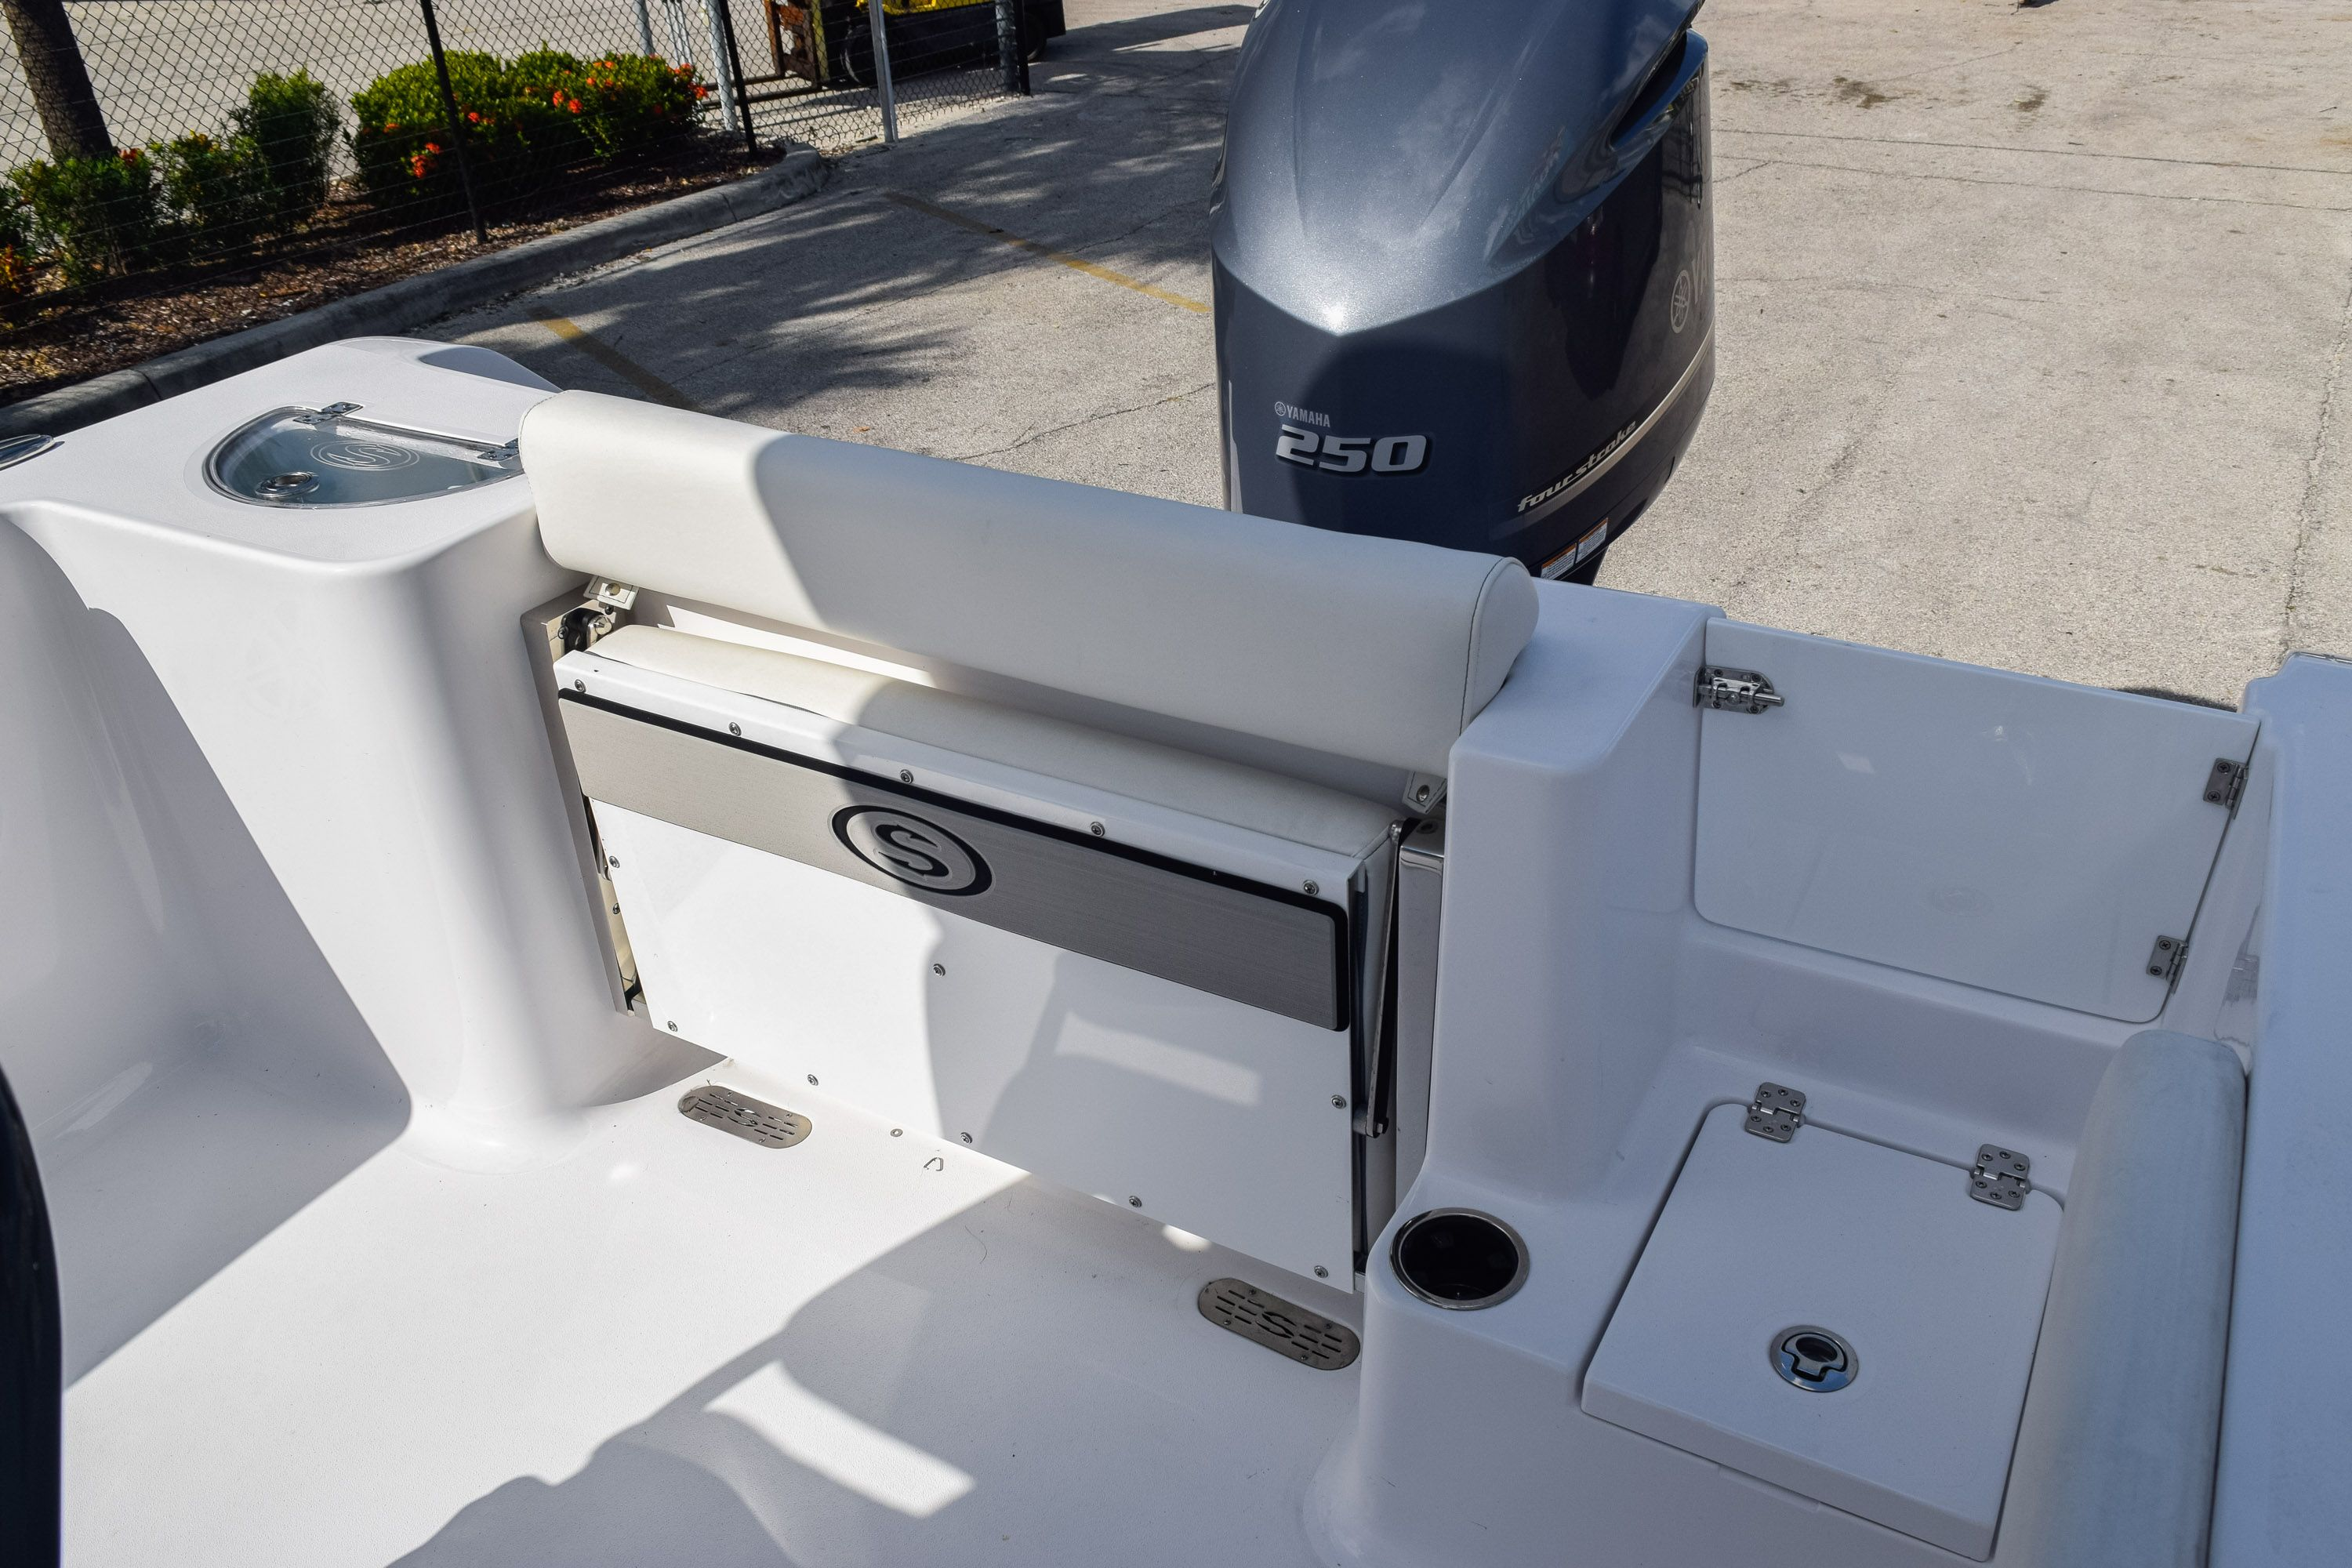 Thumbnail 8 for New 2020 Sportsman Open 232 Center Console boat for sale in Fort Lauderdale, FL